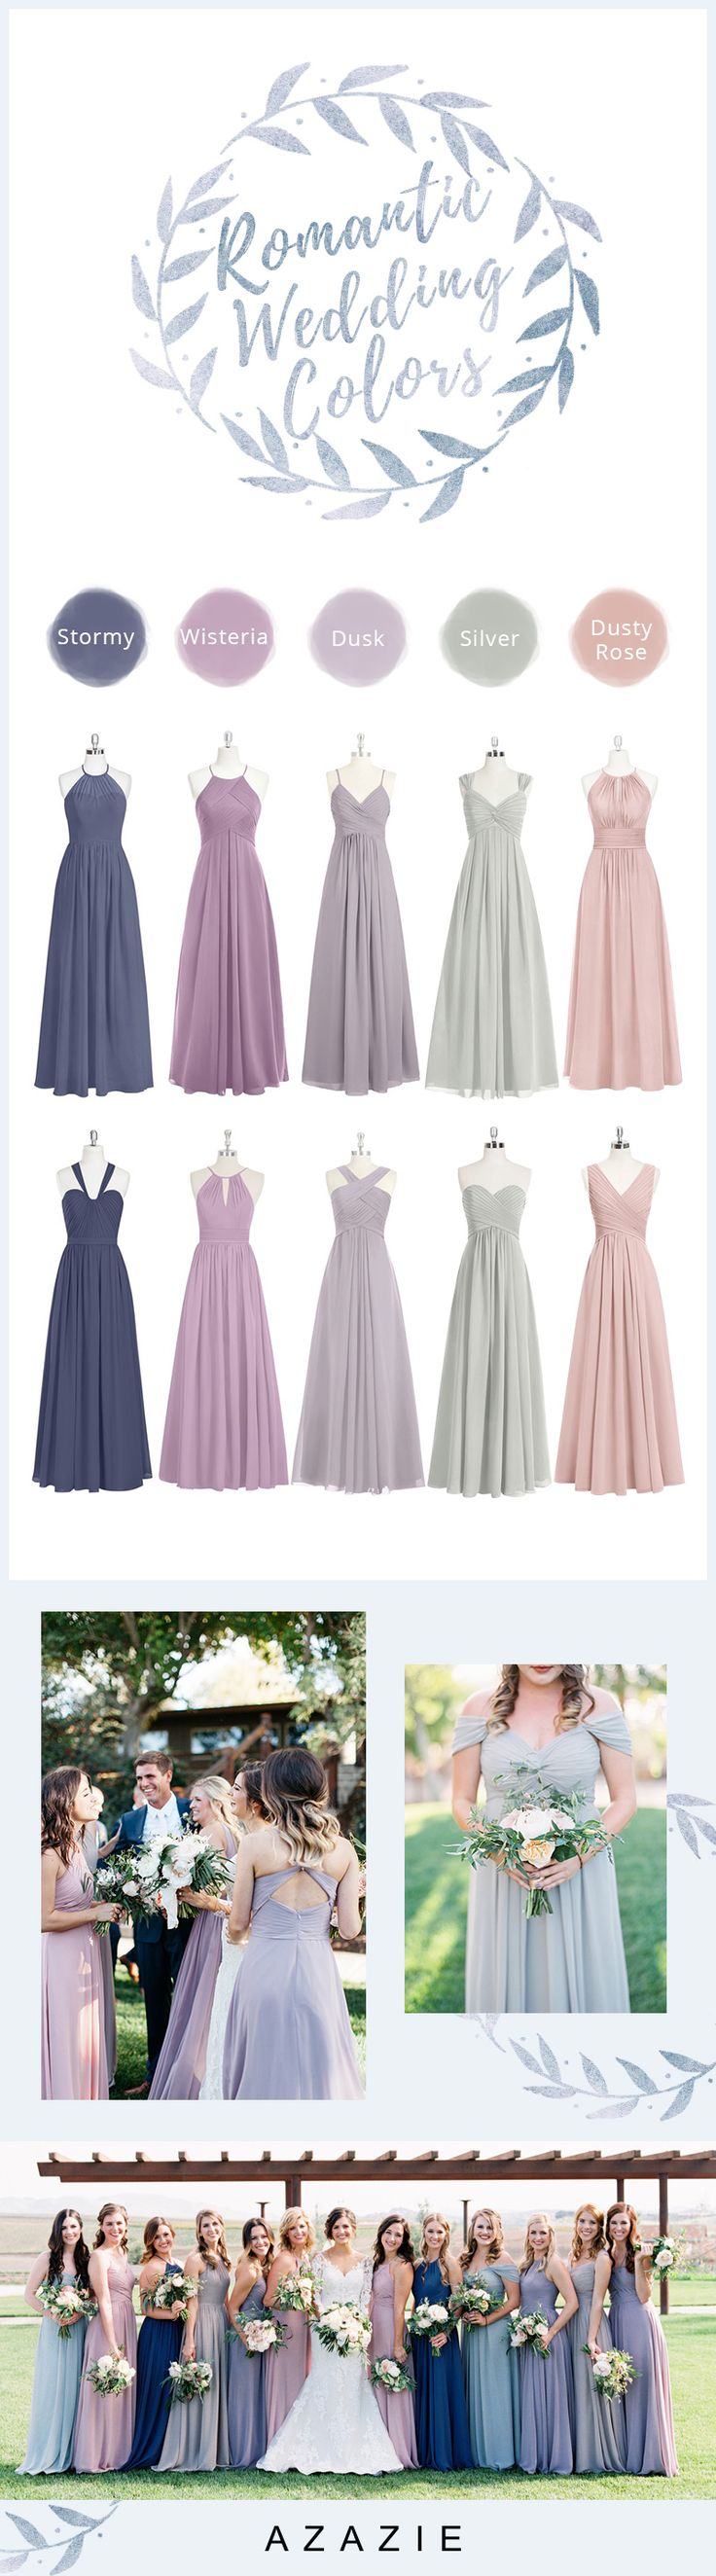 Fall in love all over again with this dreamy color palette! Azazie makes it easy to mix+match your bridal party. Shop now: www.azazie.com